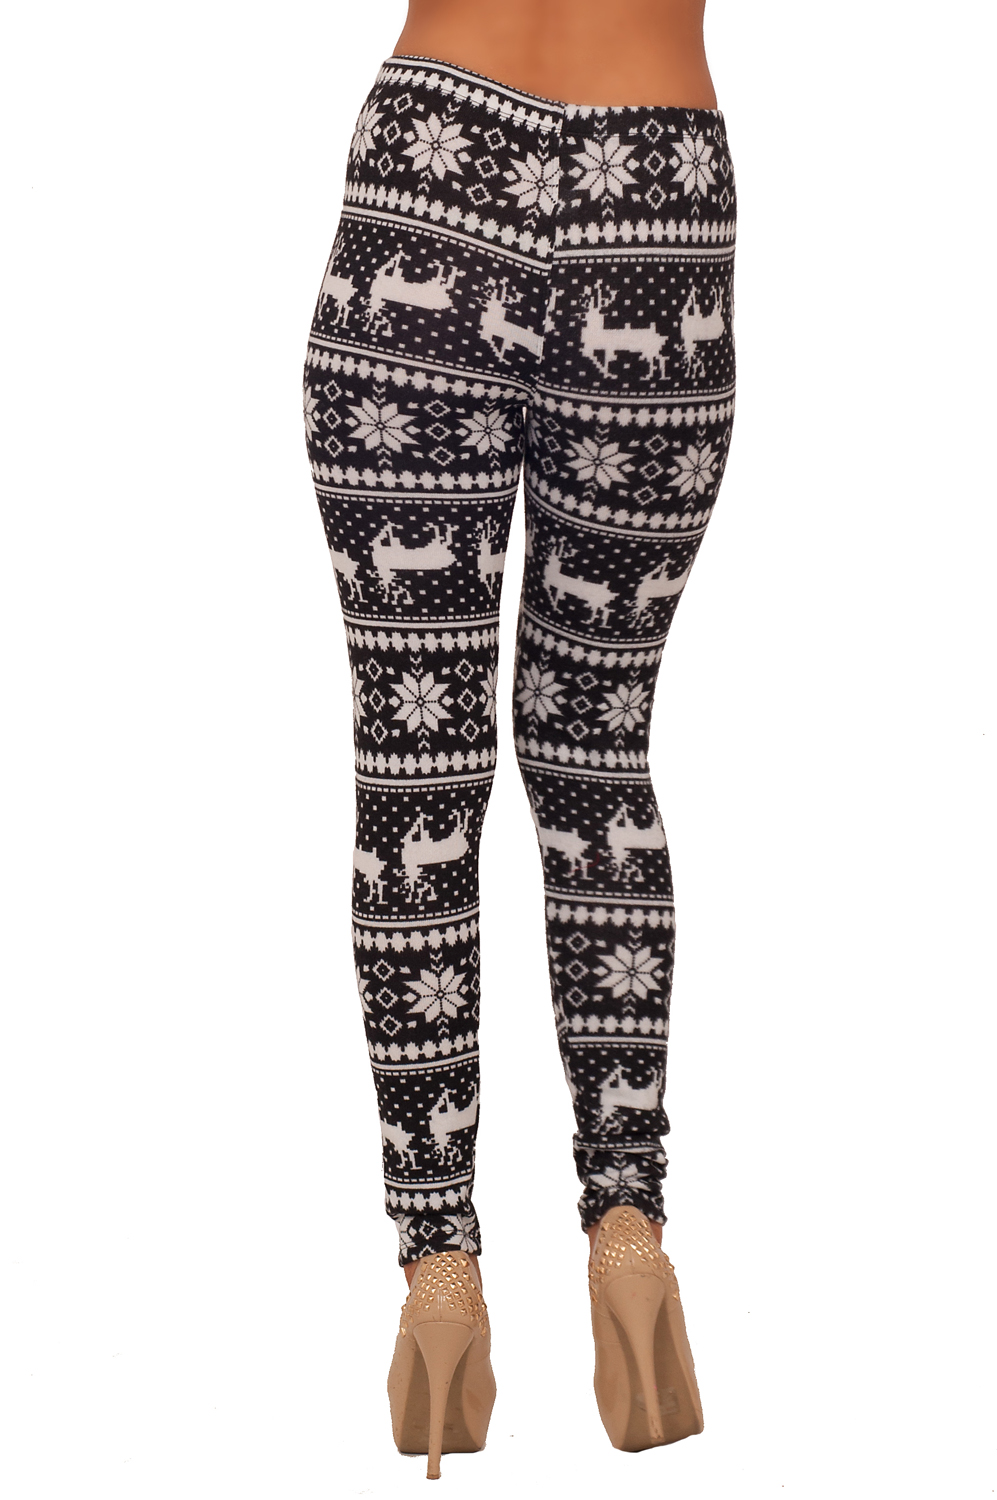 A musical skull print adds a moody twist to the same tummy-smoothing leggings you know and love.